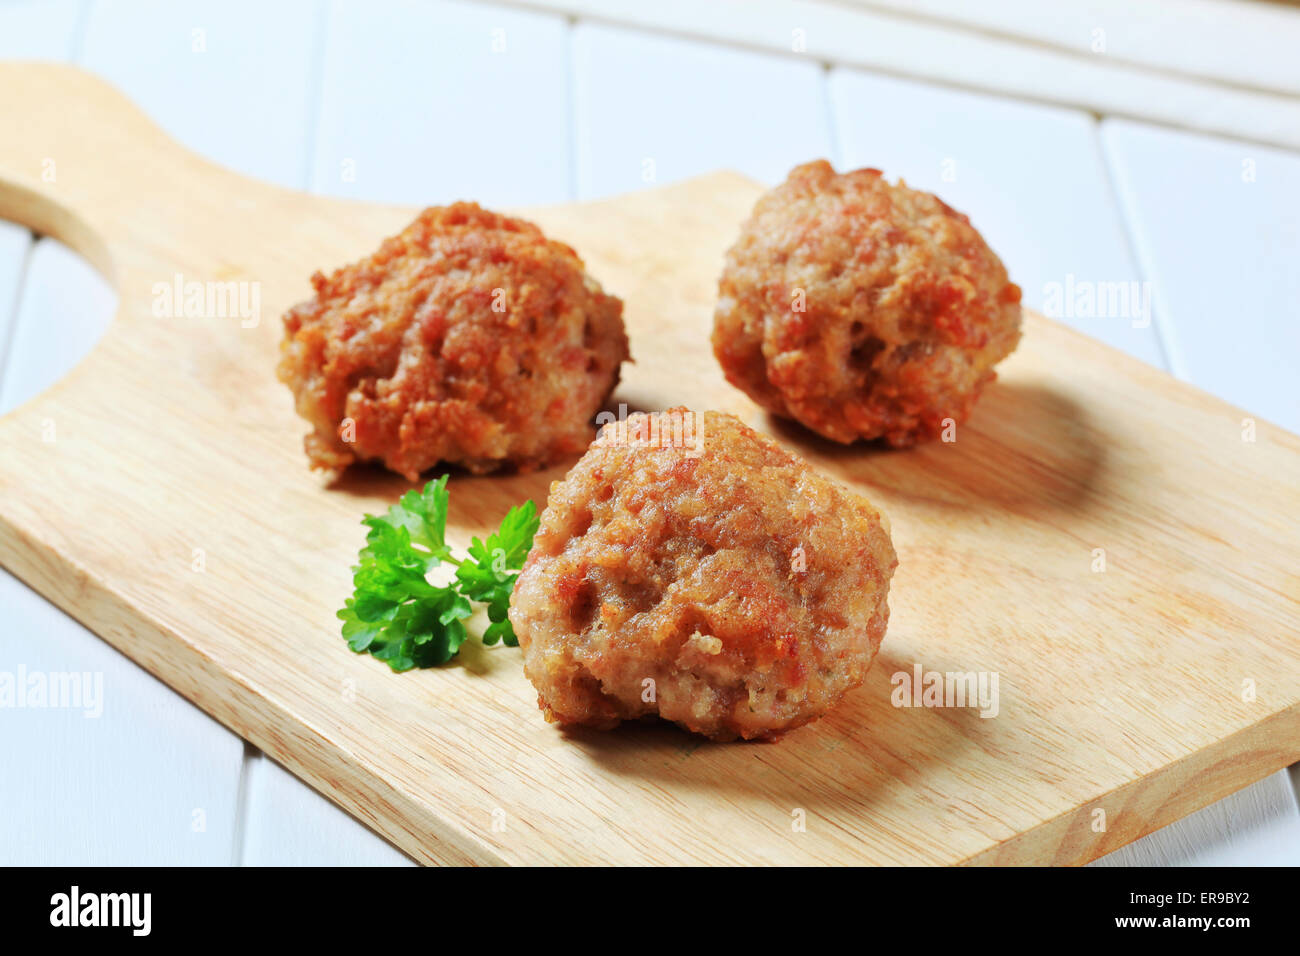 Meat balls on wooden cutting board - Stock Image